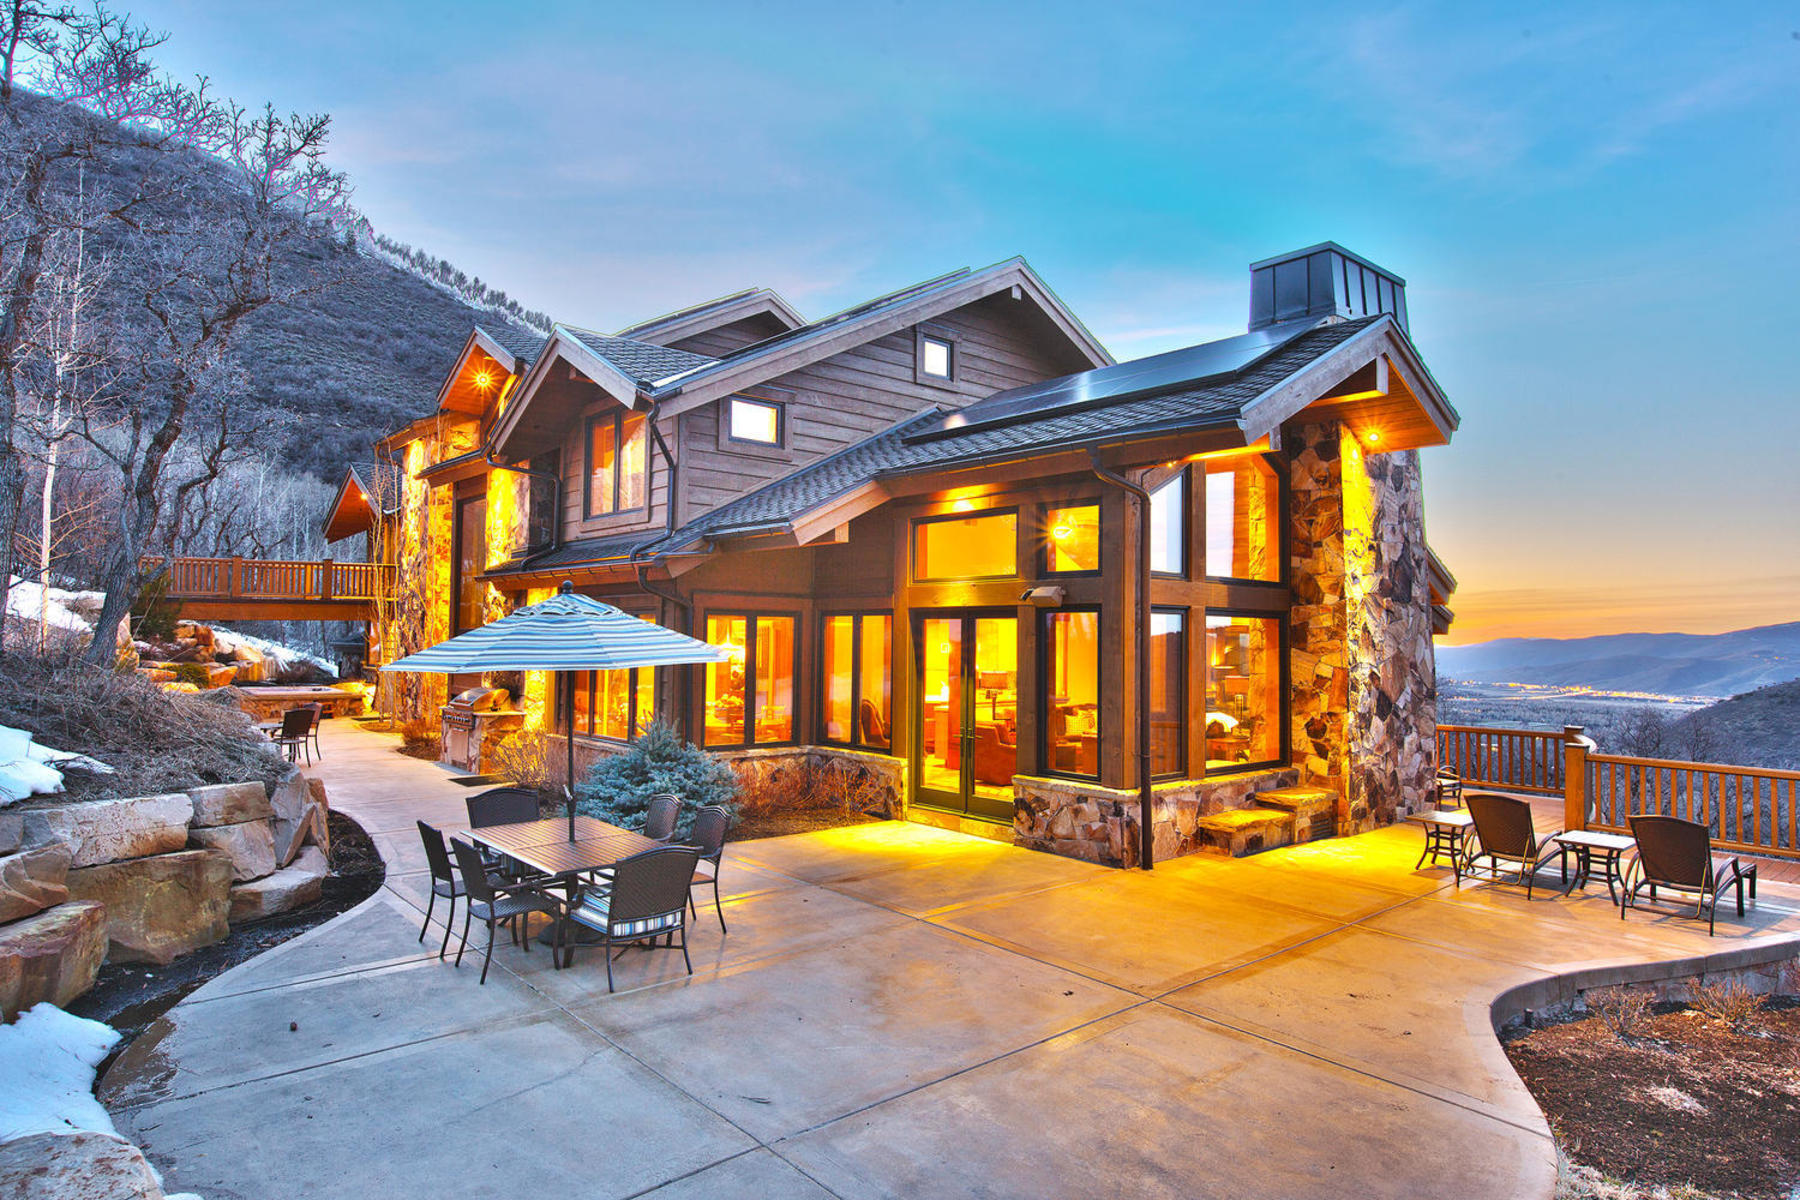 独户住宅 为 销售 在 Timeless Elegance at the Top of Aspen Springs 25 Canyon Ct 帕克城, 犹他州 84060 美国